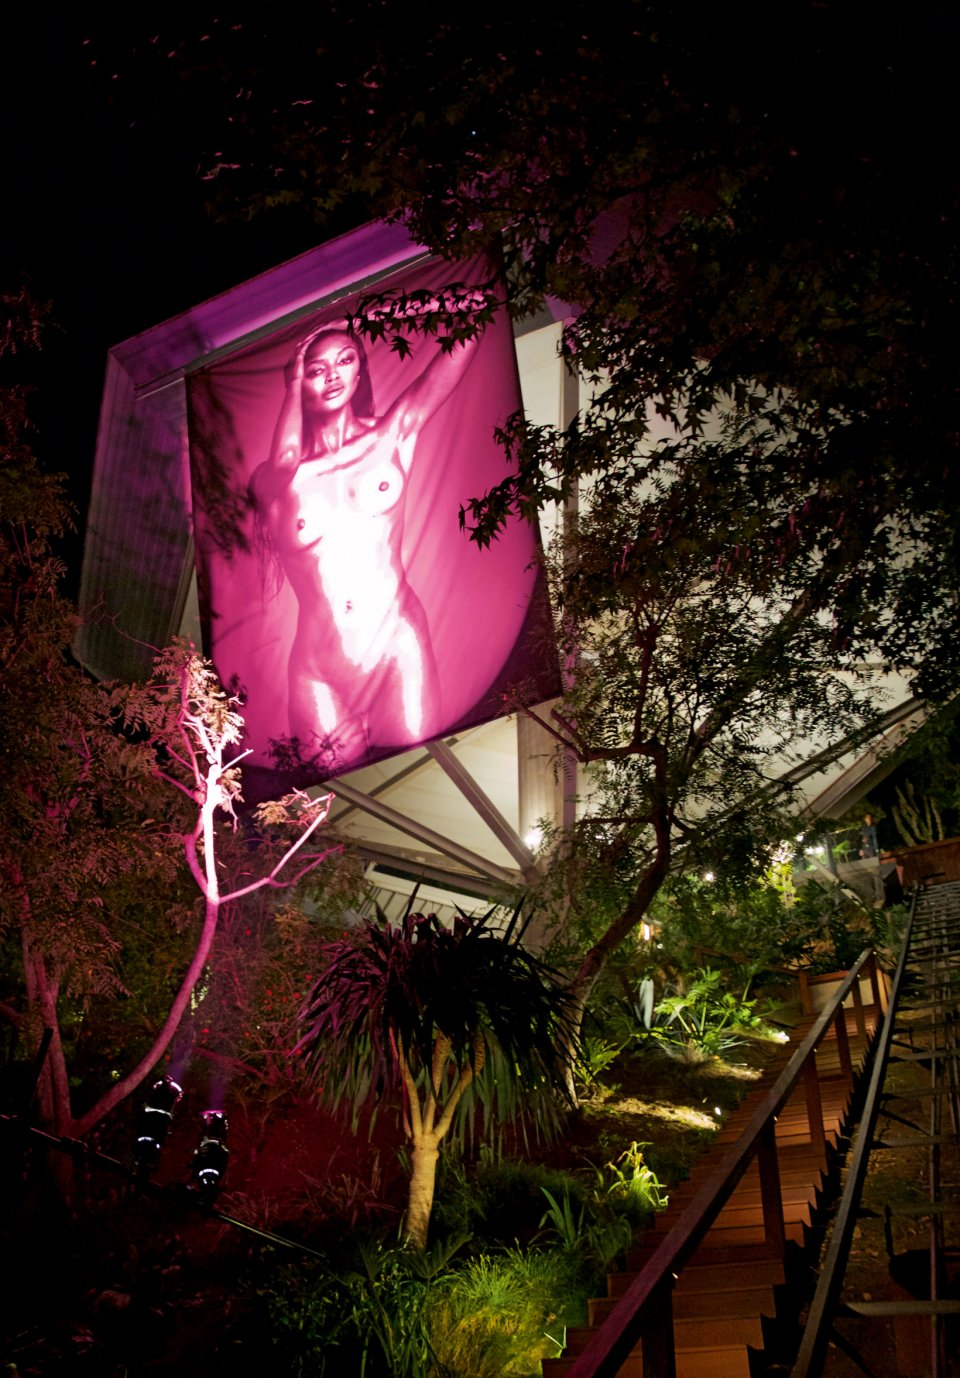 The one and only Naomi Campbell celebrates her TASCHEN homage with a night at the Chemosphere house.